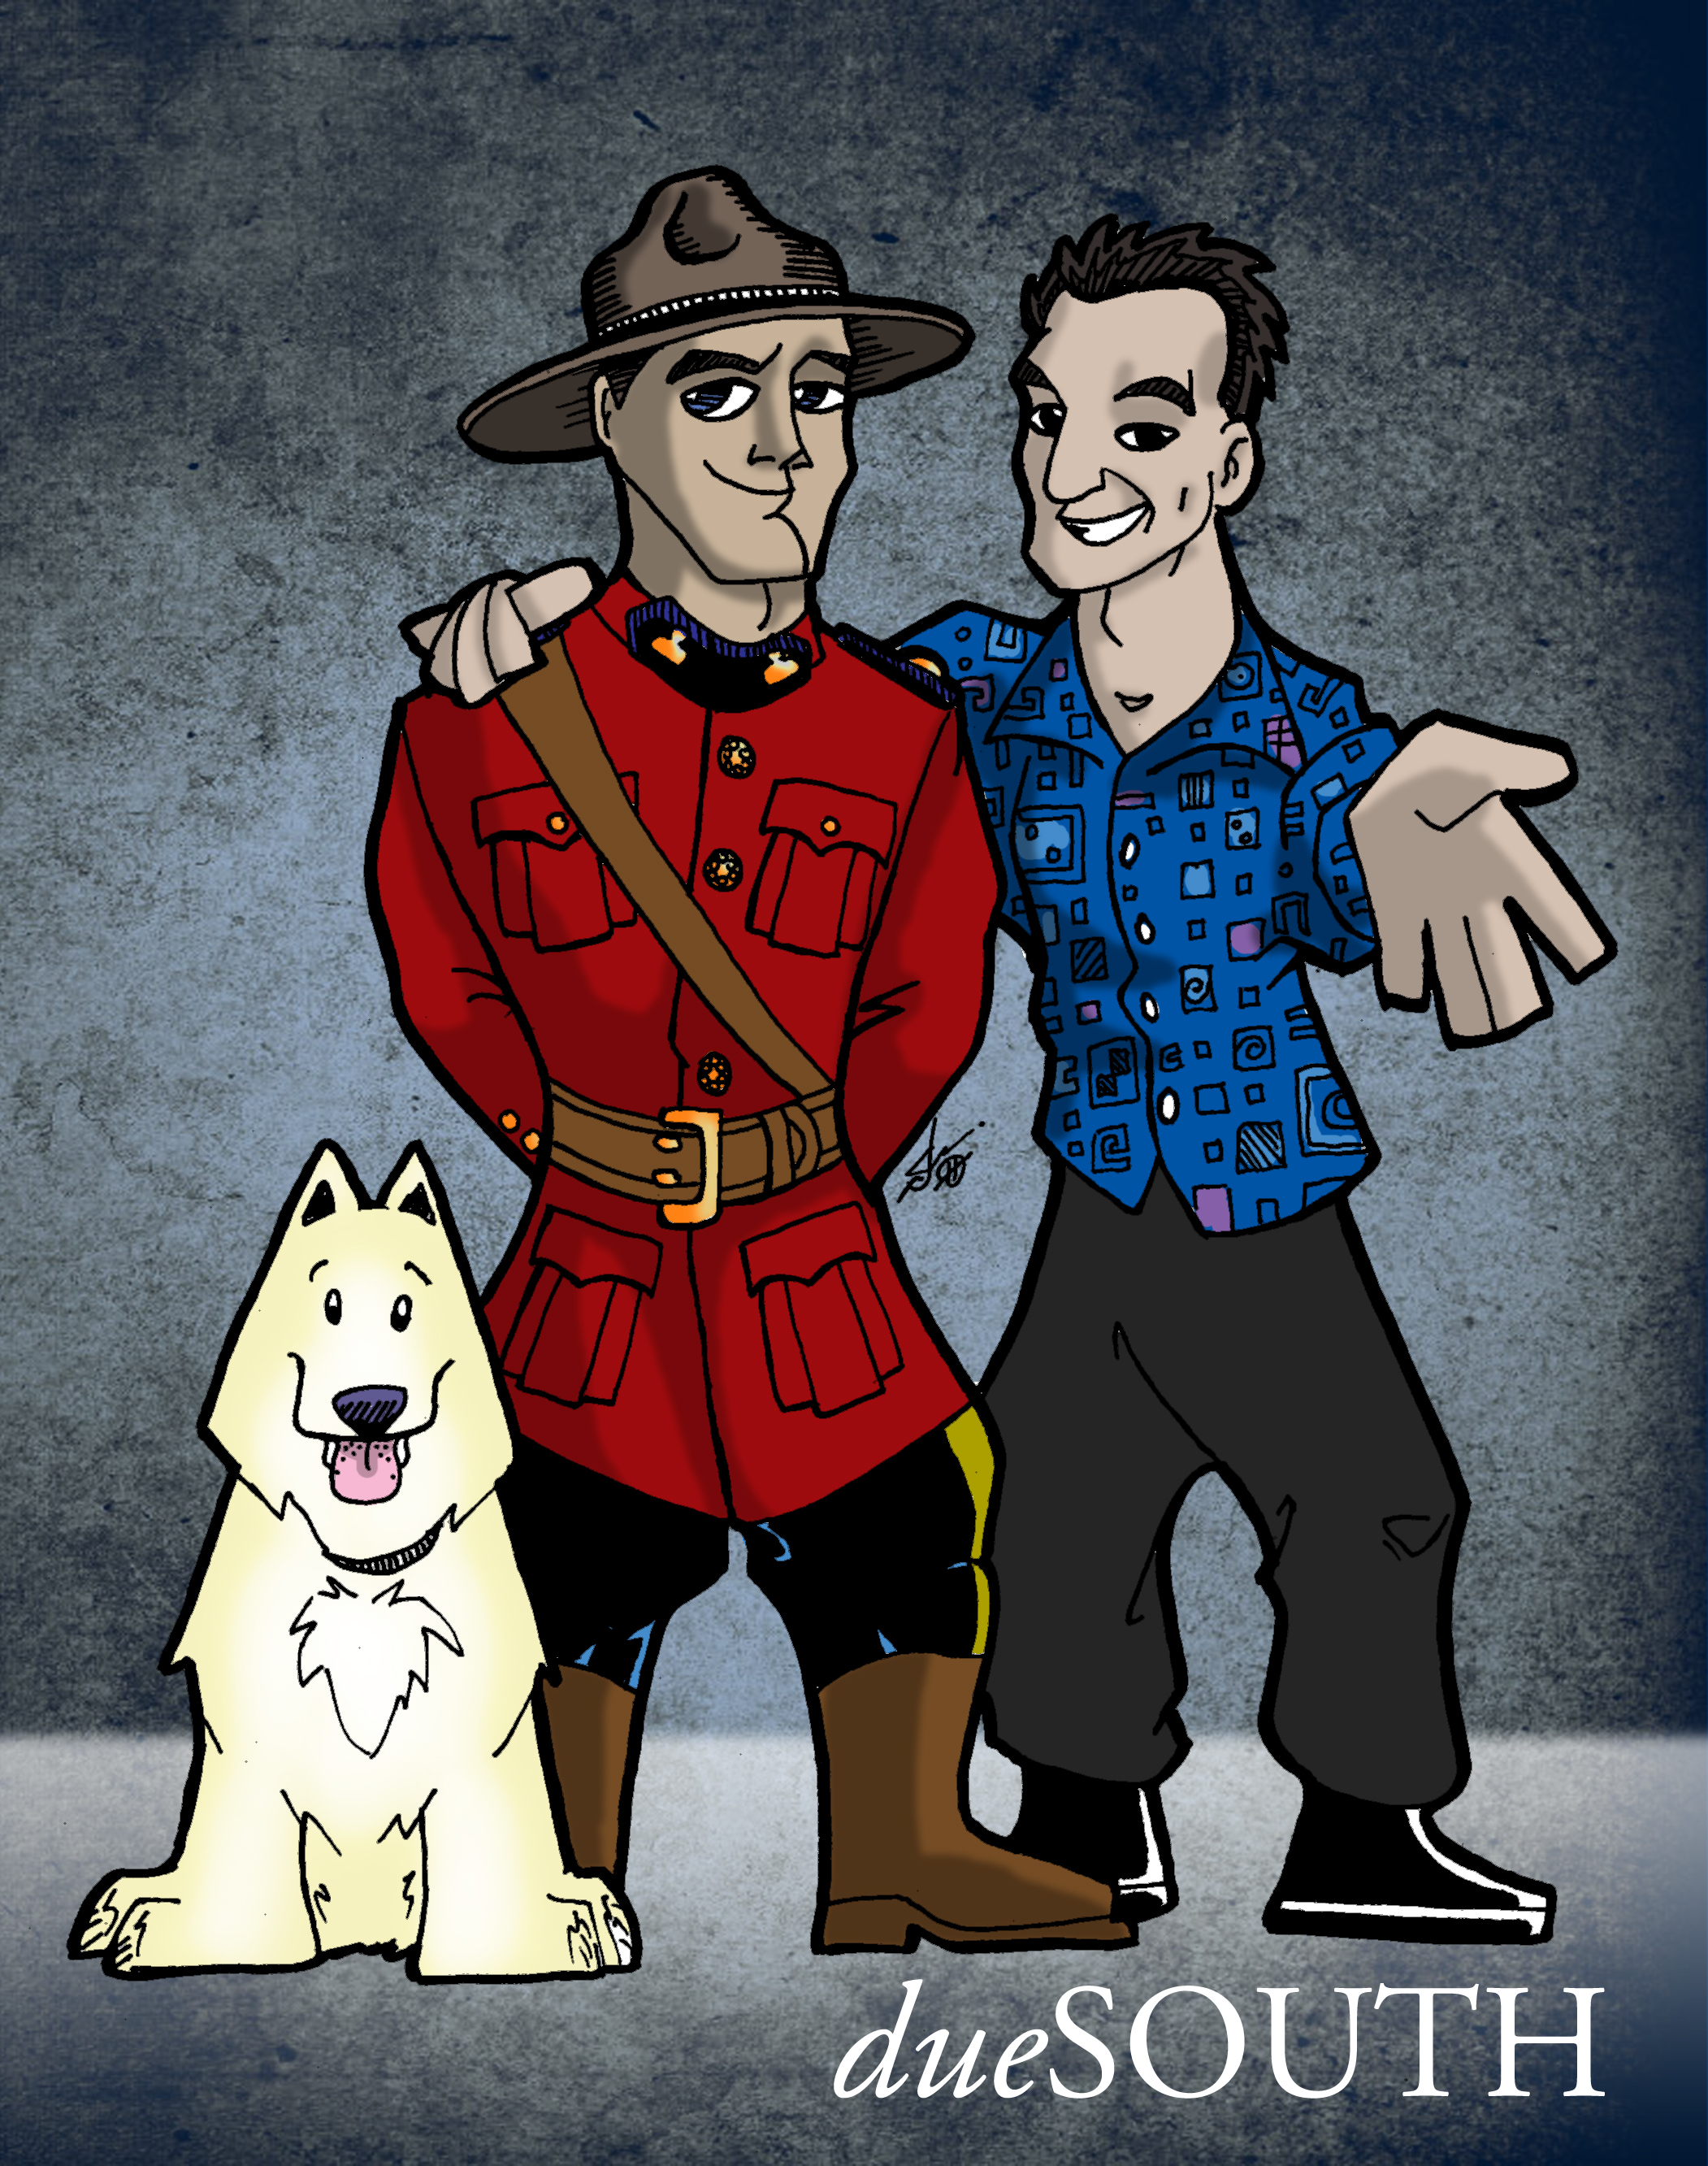 dueSouth_toons_by_scruffy_zero